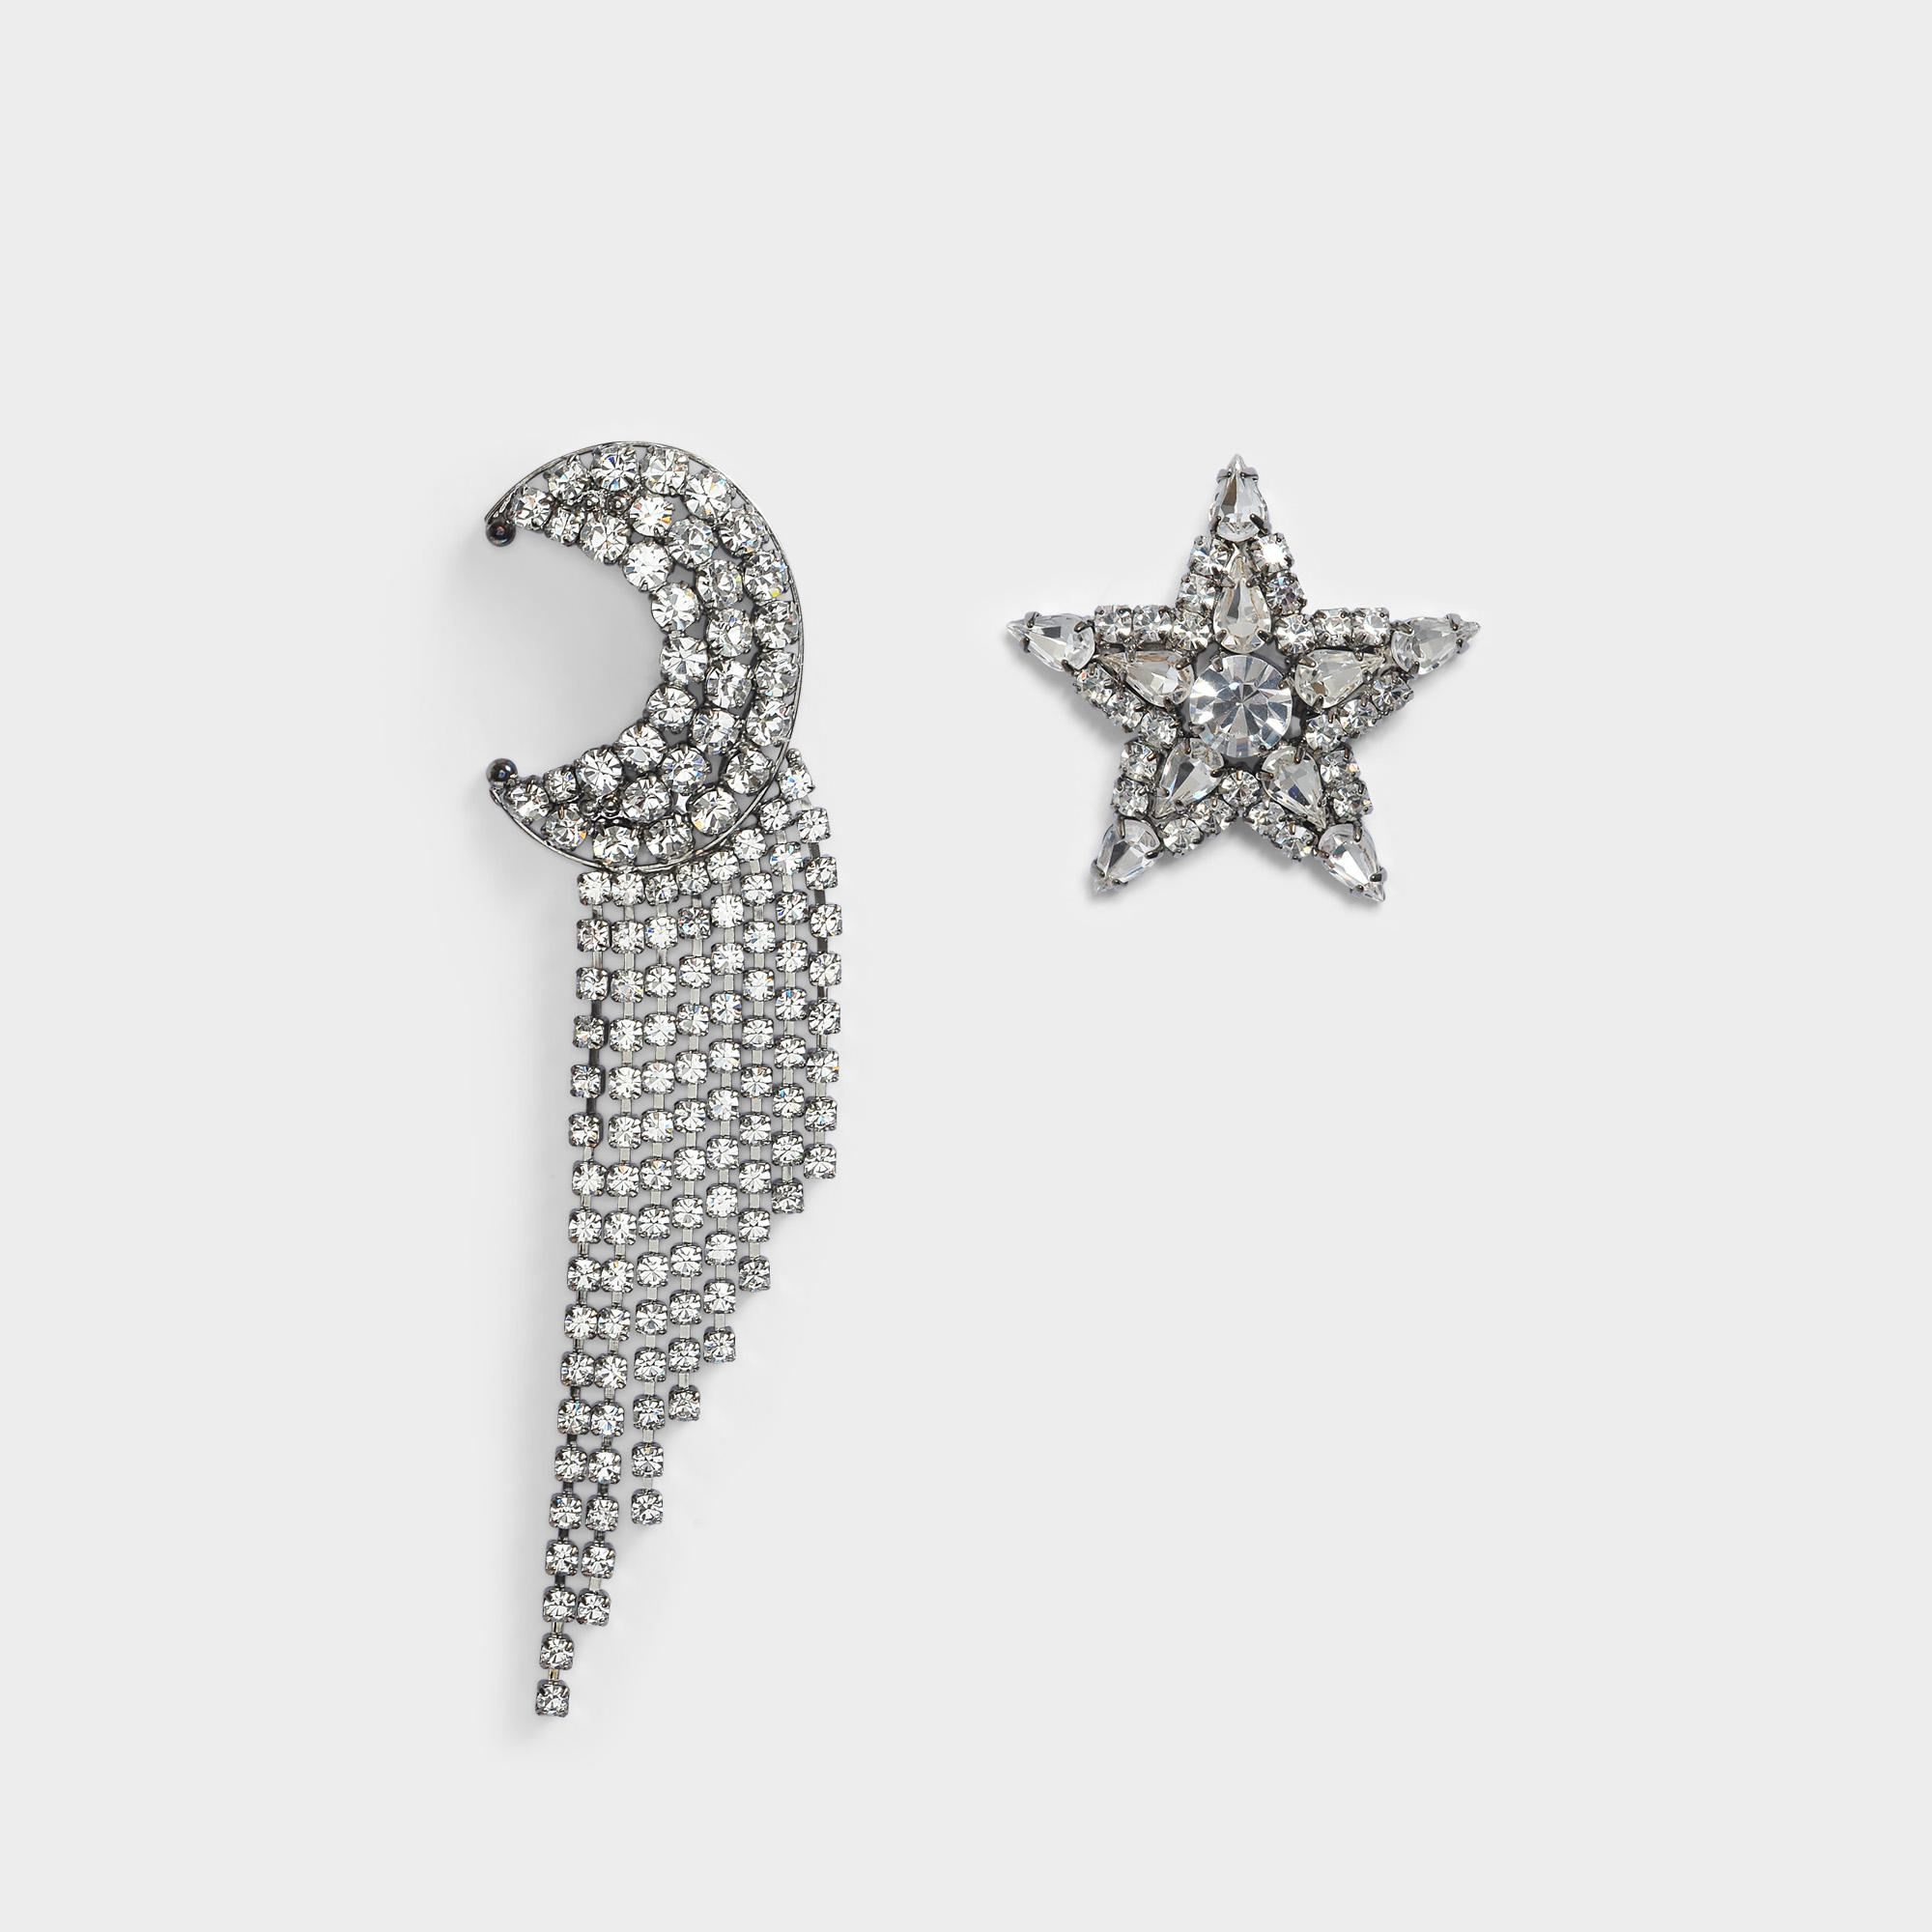 Exclusivity - Asymmetrical Star and Moon Crystals Cascade Earrings in Ruthenium and Crystals Helene Zubeldia lGz7Ro9MT